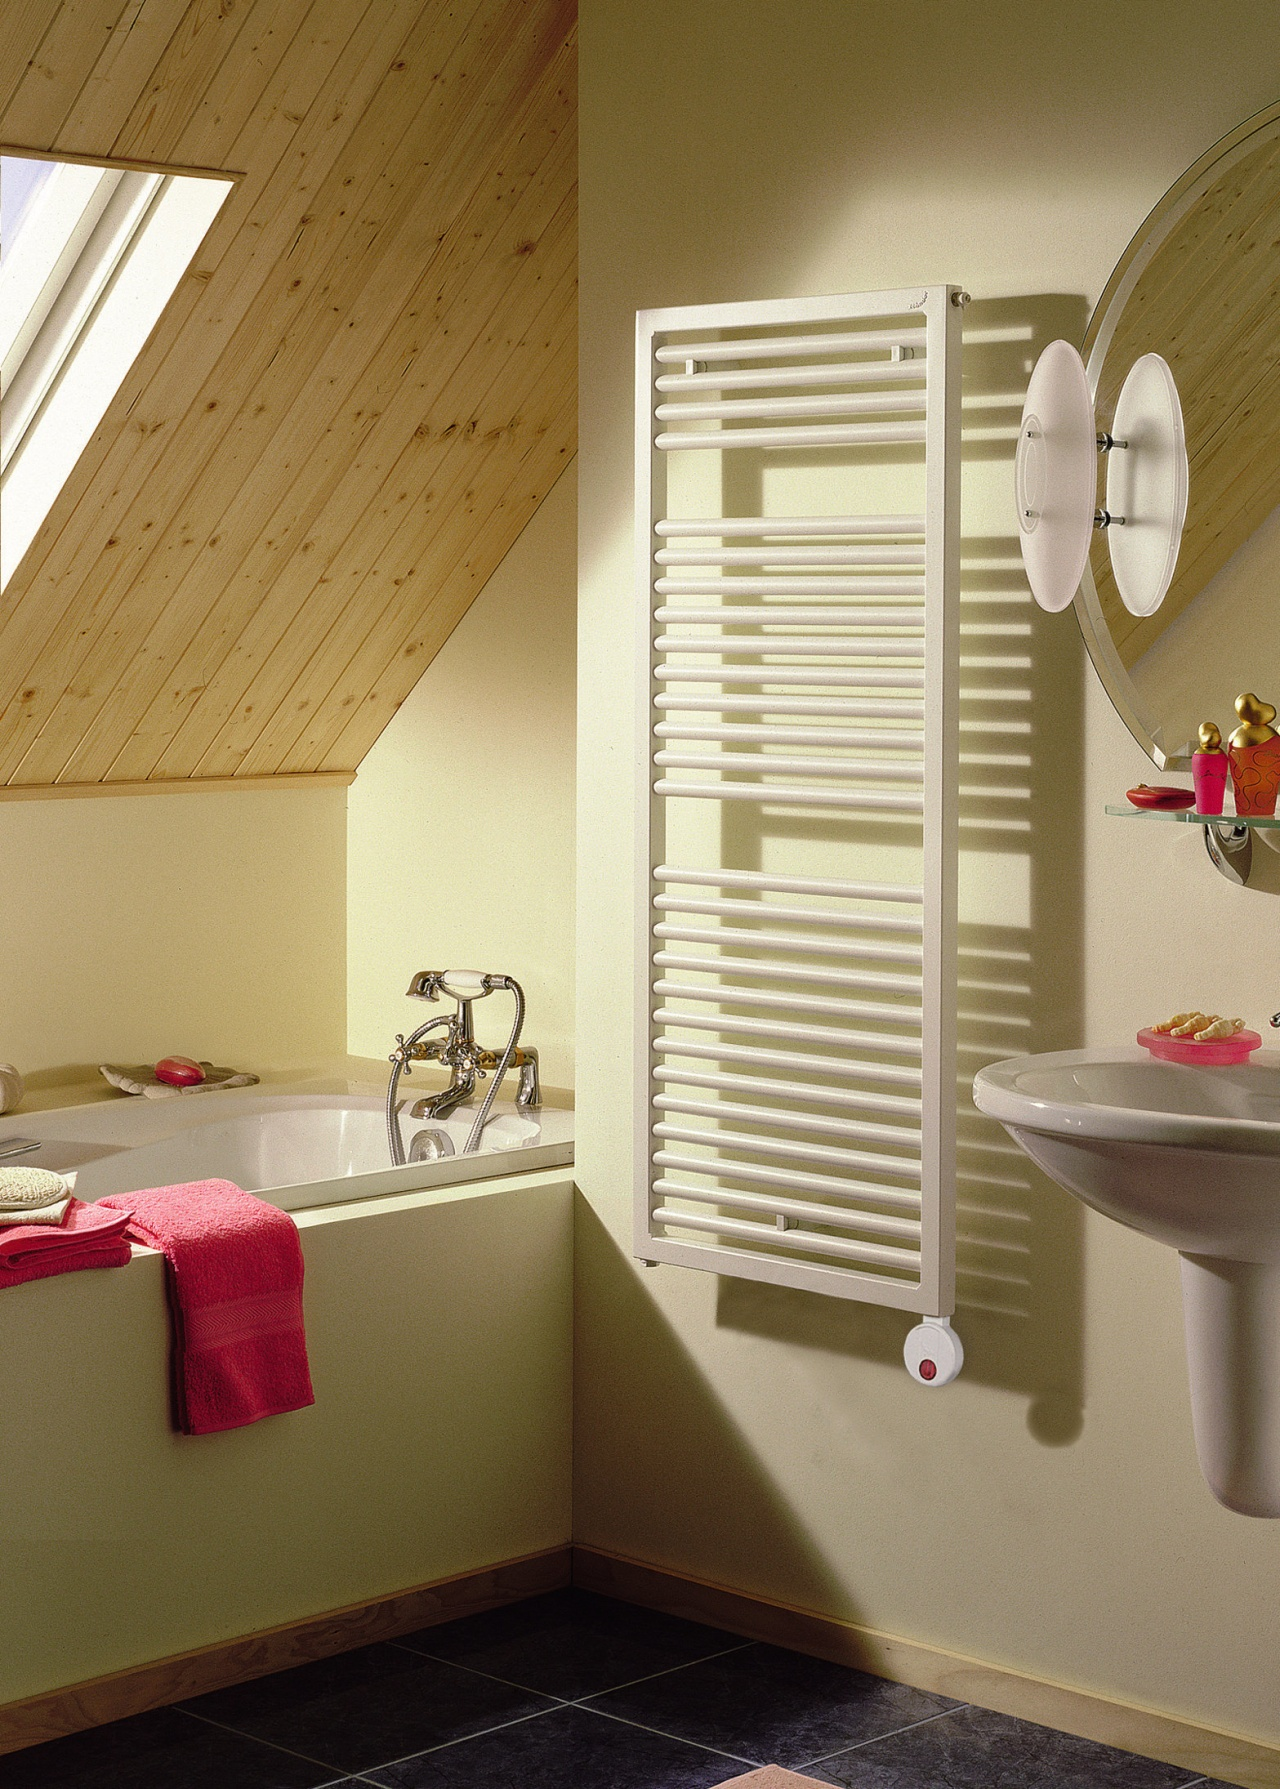 View of the towel radiator from Zehnder America architecture, bathroom, ceiling, daylighting, floor, home, house, interior design, room, wall, window, wood, brown